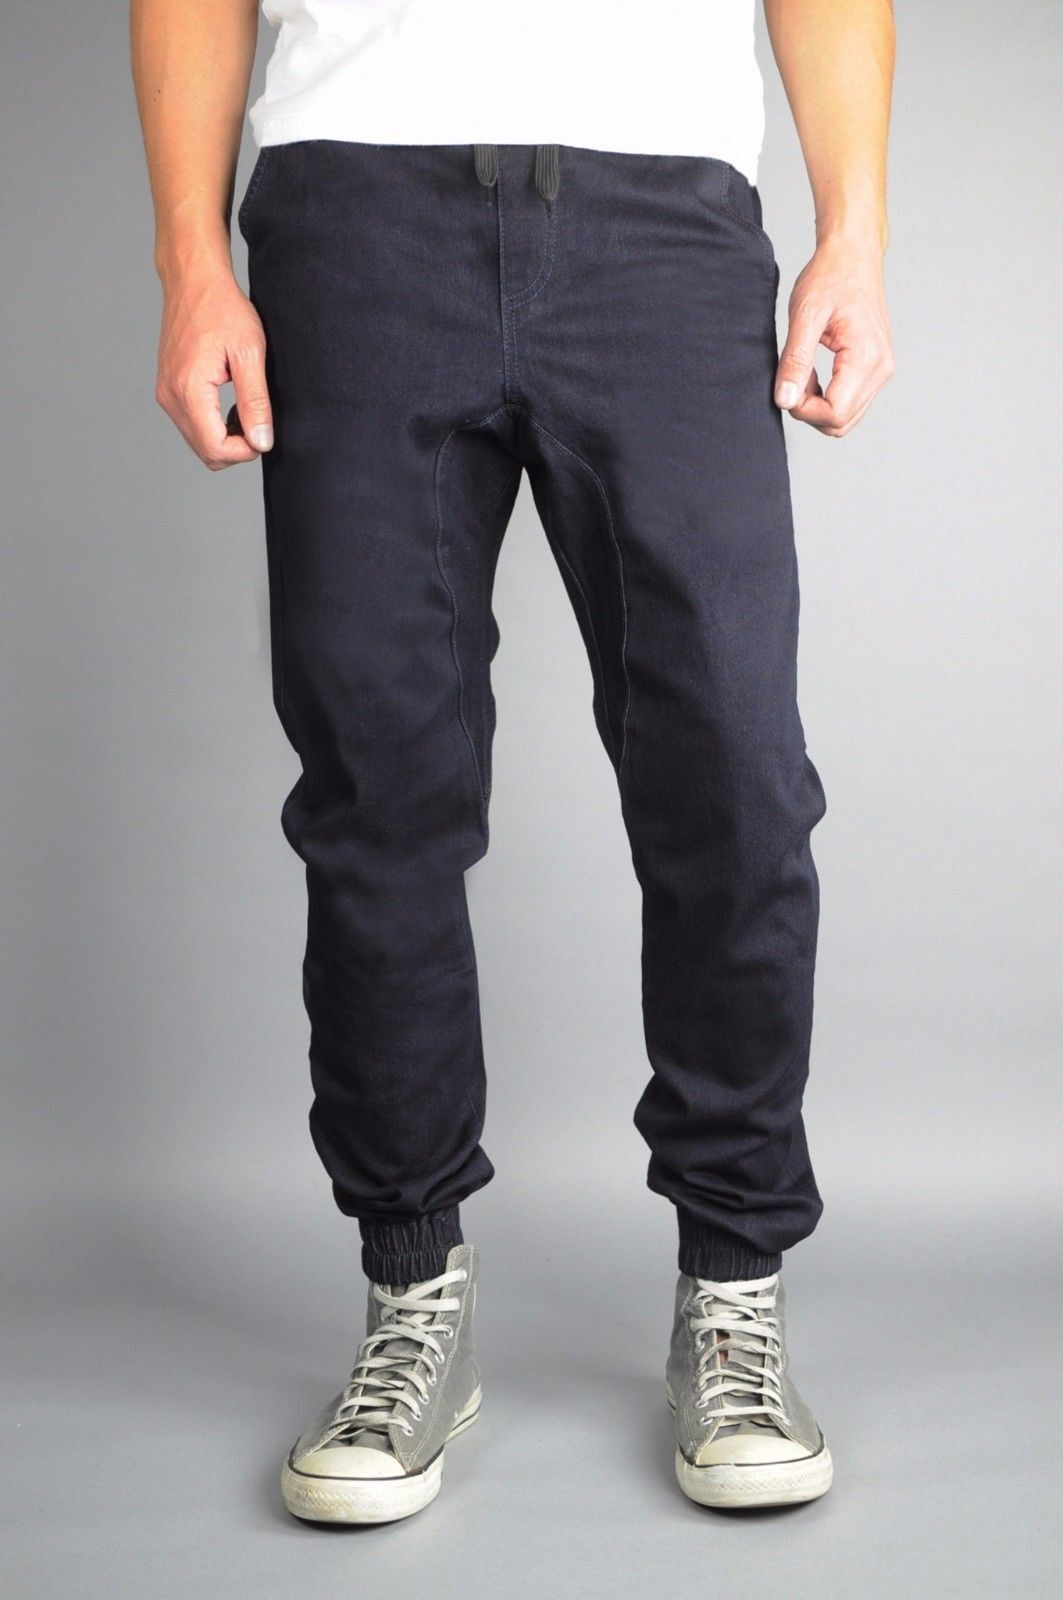 Navy bluee Premium plus denim joggers twill jeans made in the USA with stretch